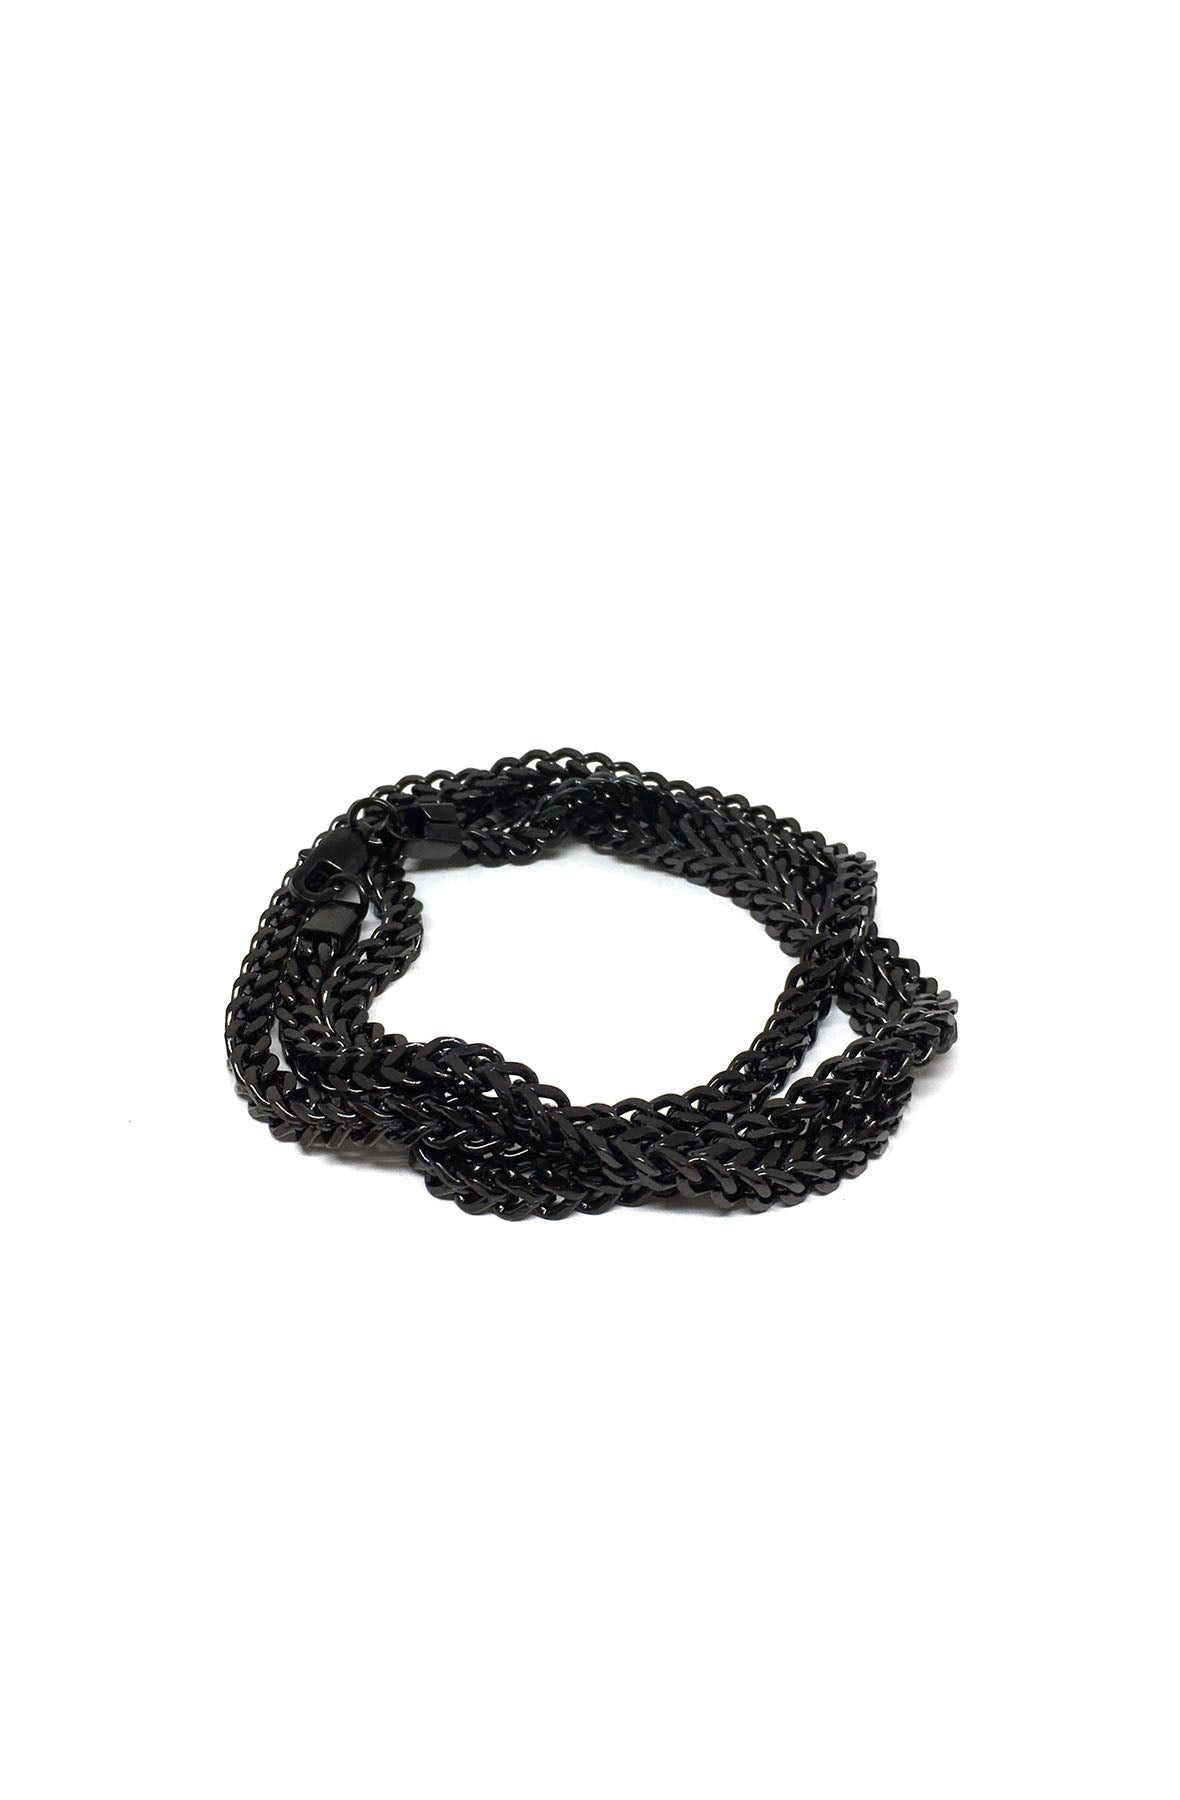 Triple Wrap Black Franco Chain Bracelet